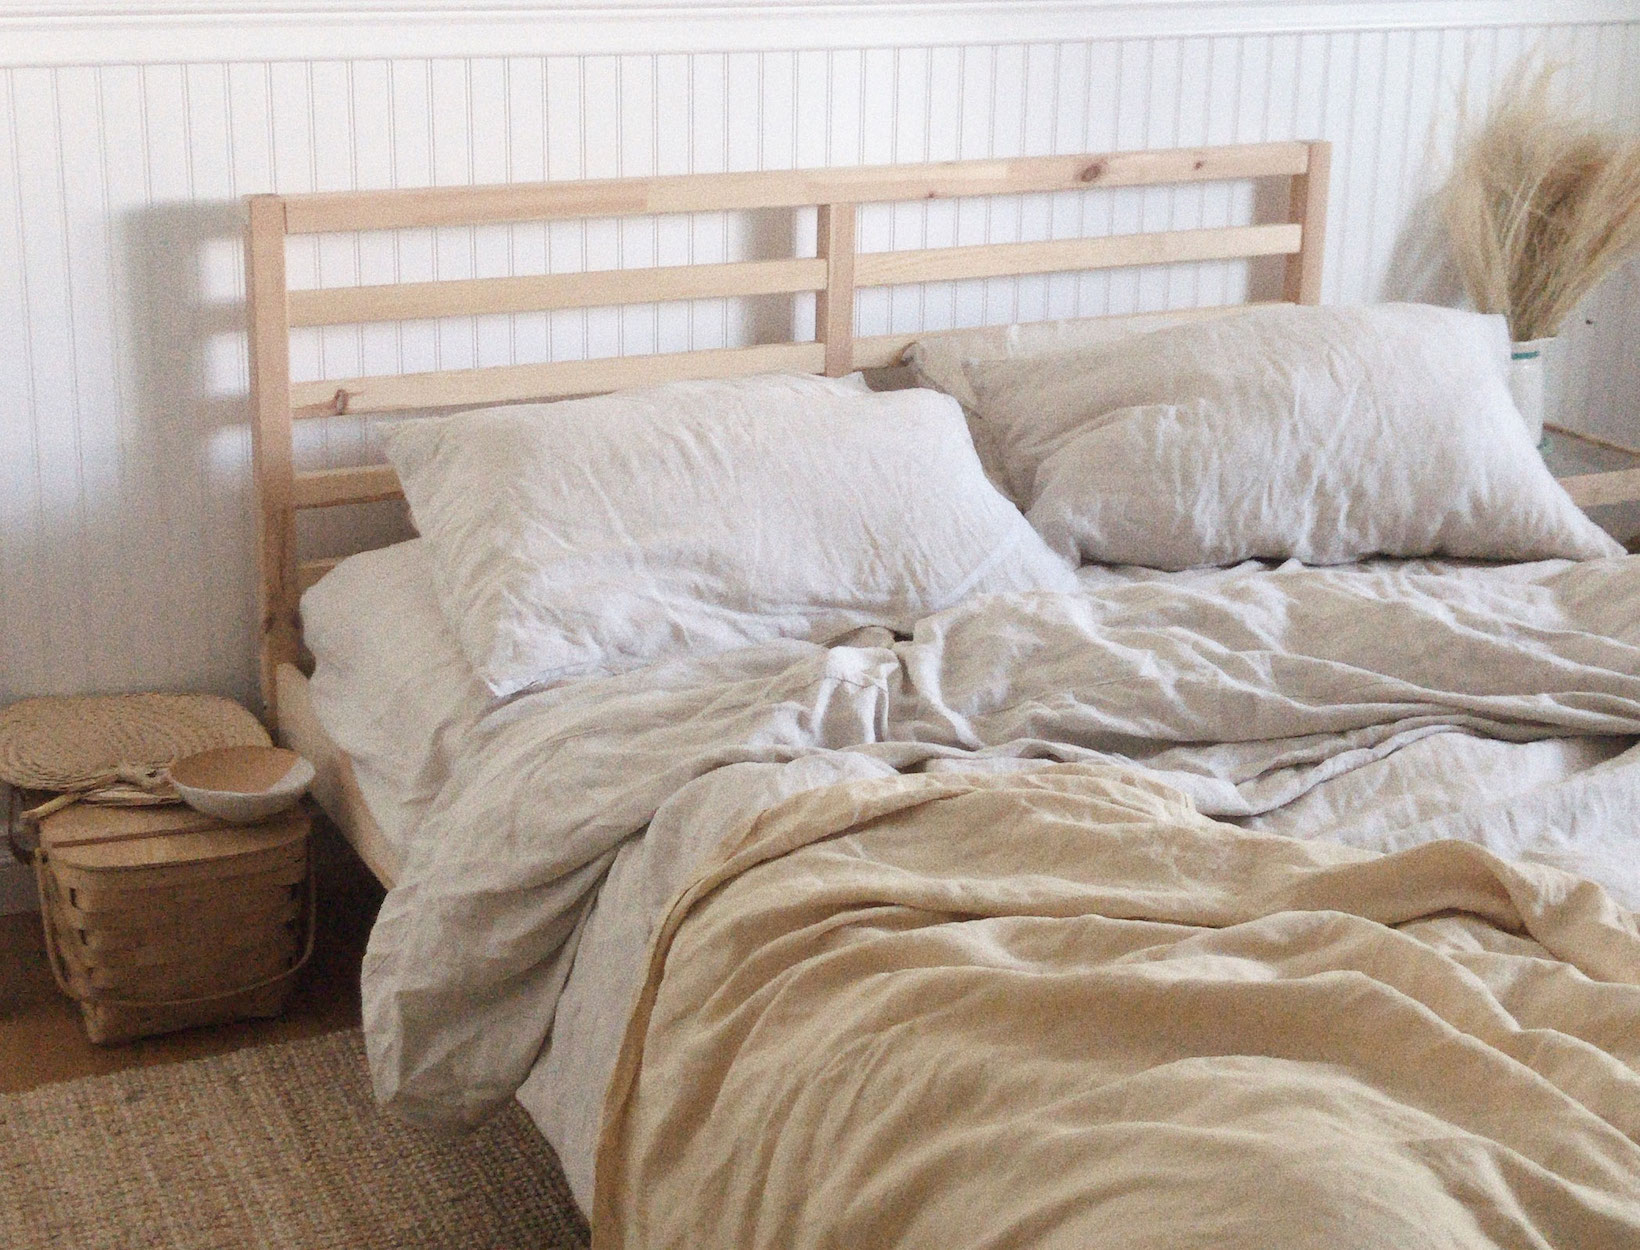 How to Find the Healthiest, Most Supportive Mattress